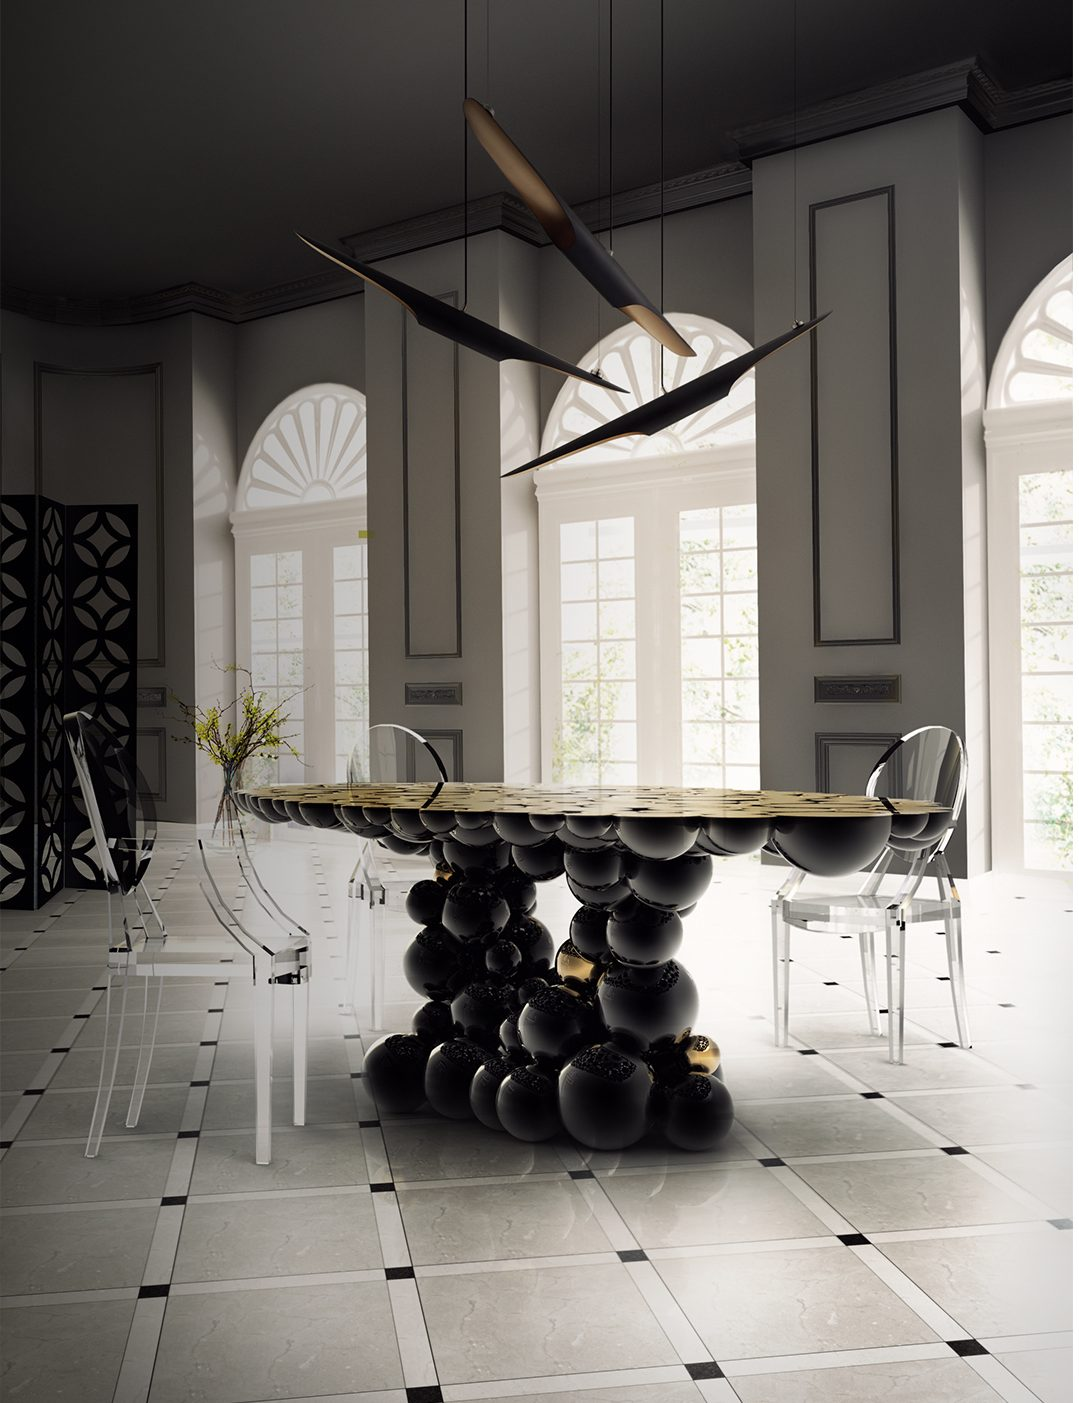 Top 10 Black Dining Rooms that will Delight You9 black dining rooms Top 10 Black Dining Rooms that will Delight You Top 10 Black Dining Rooms that will Delight You9 e1472635372743